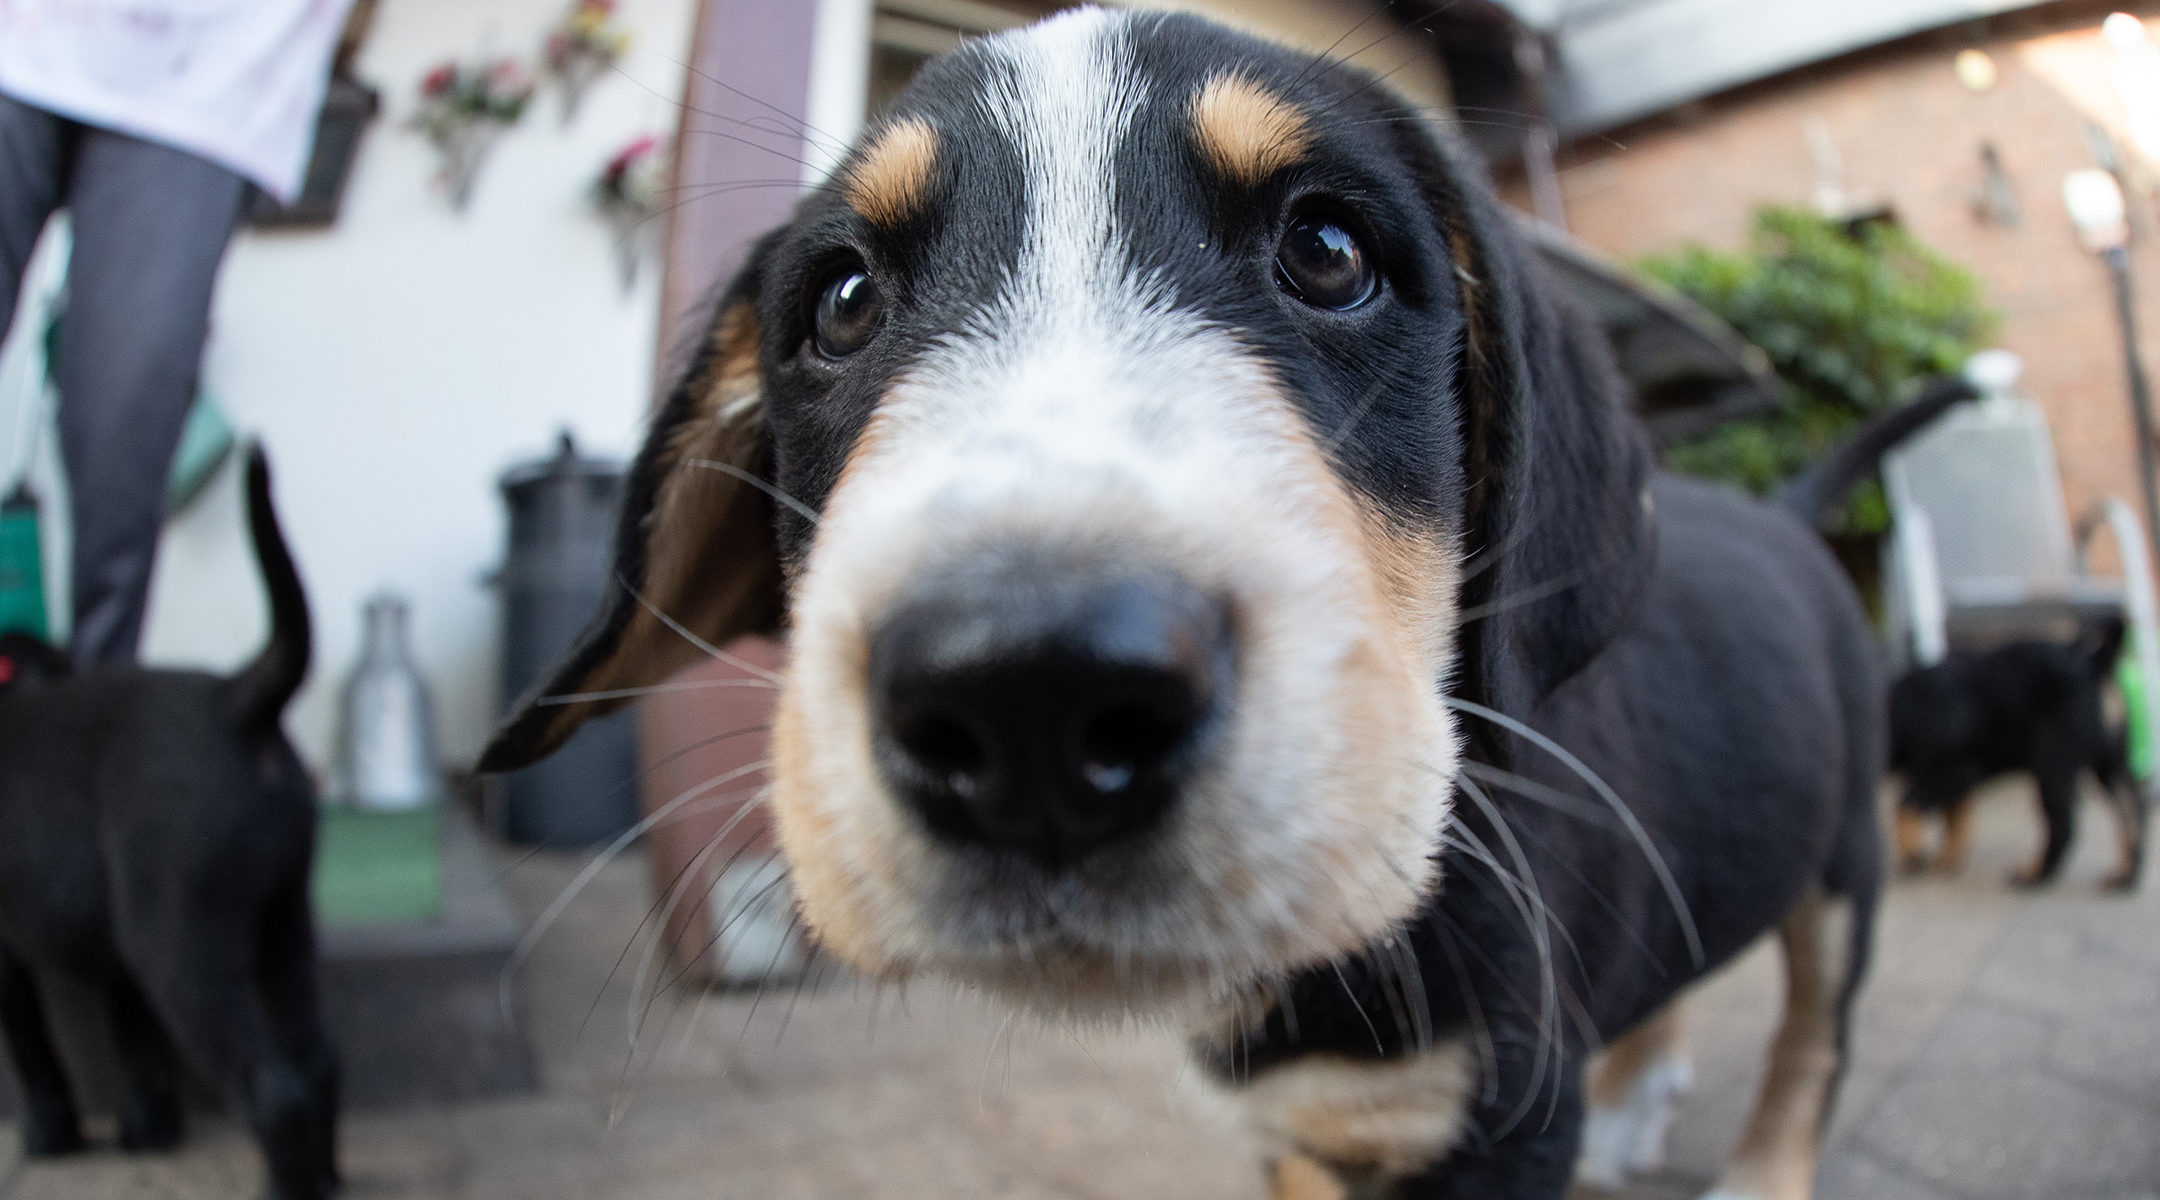 A puppy dog looks into the camera in Germany, July 12, 2019. (Friso Gentsch/picture alliance via Getty Images)